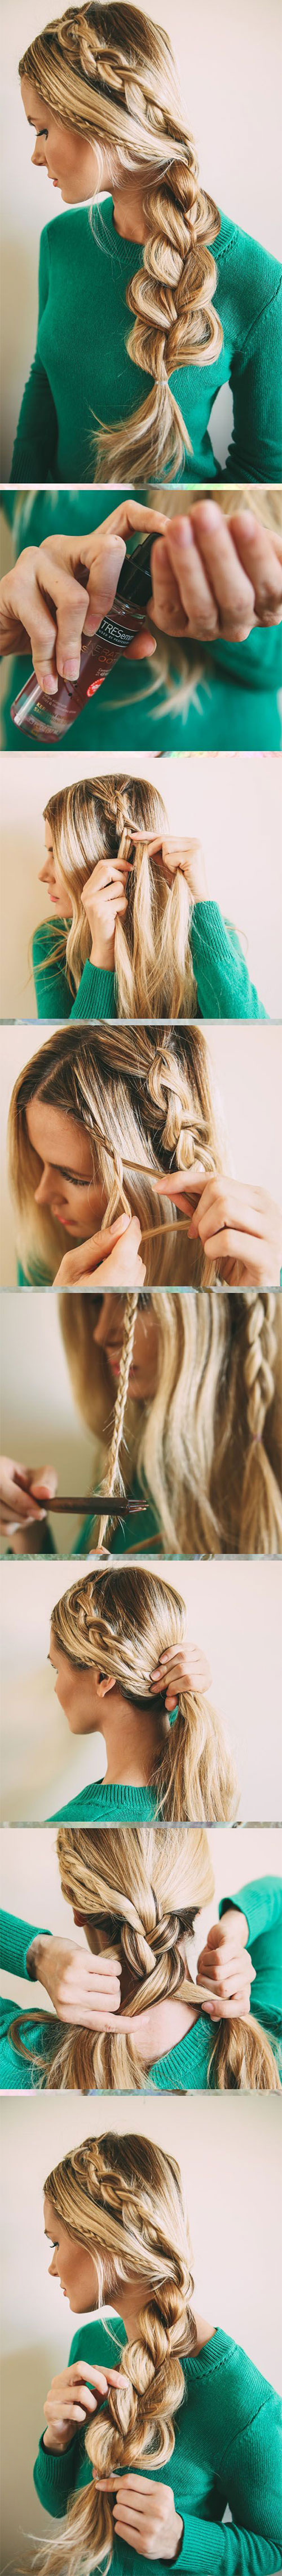 Simple-Step-By-Step-Winter-Hairstyle-Tutorials-For-Beginners-Learners-2016-10